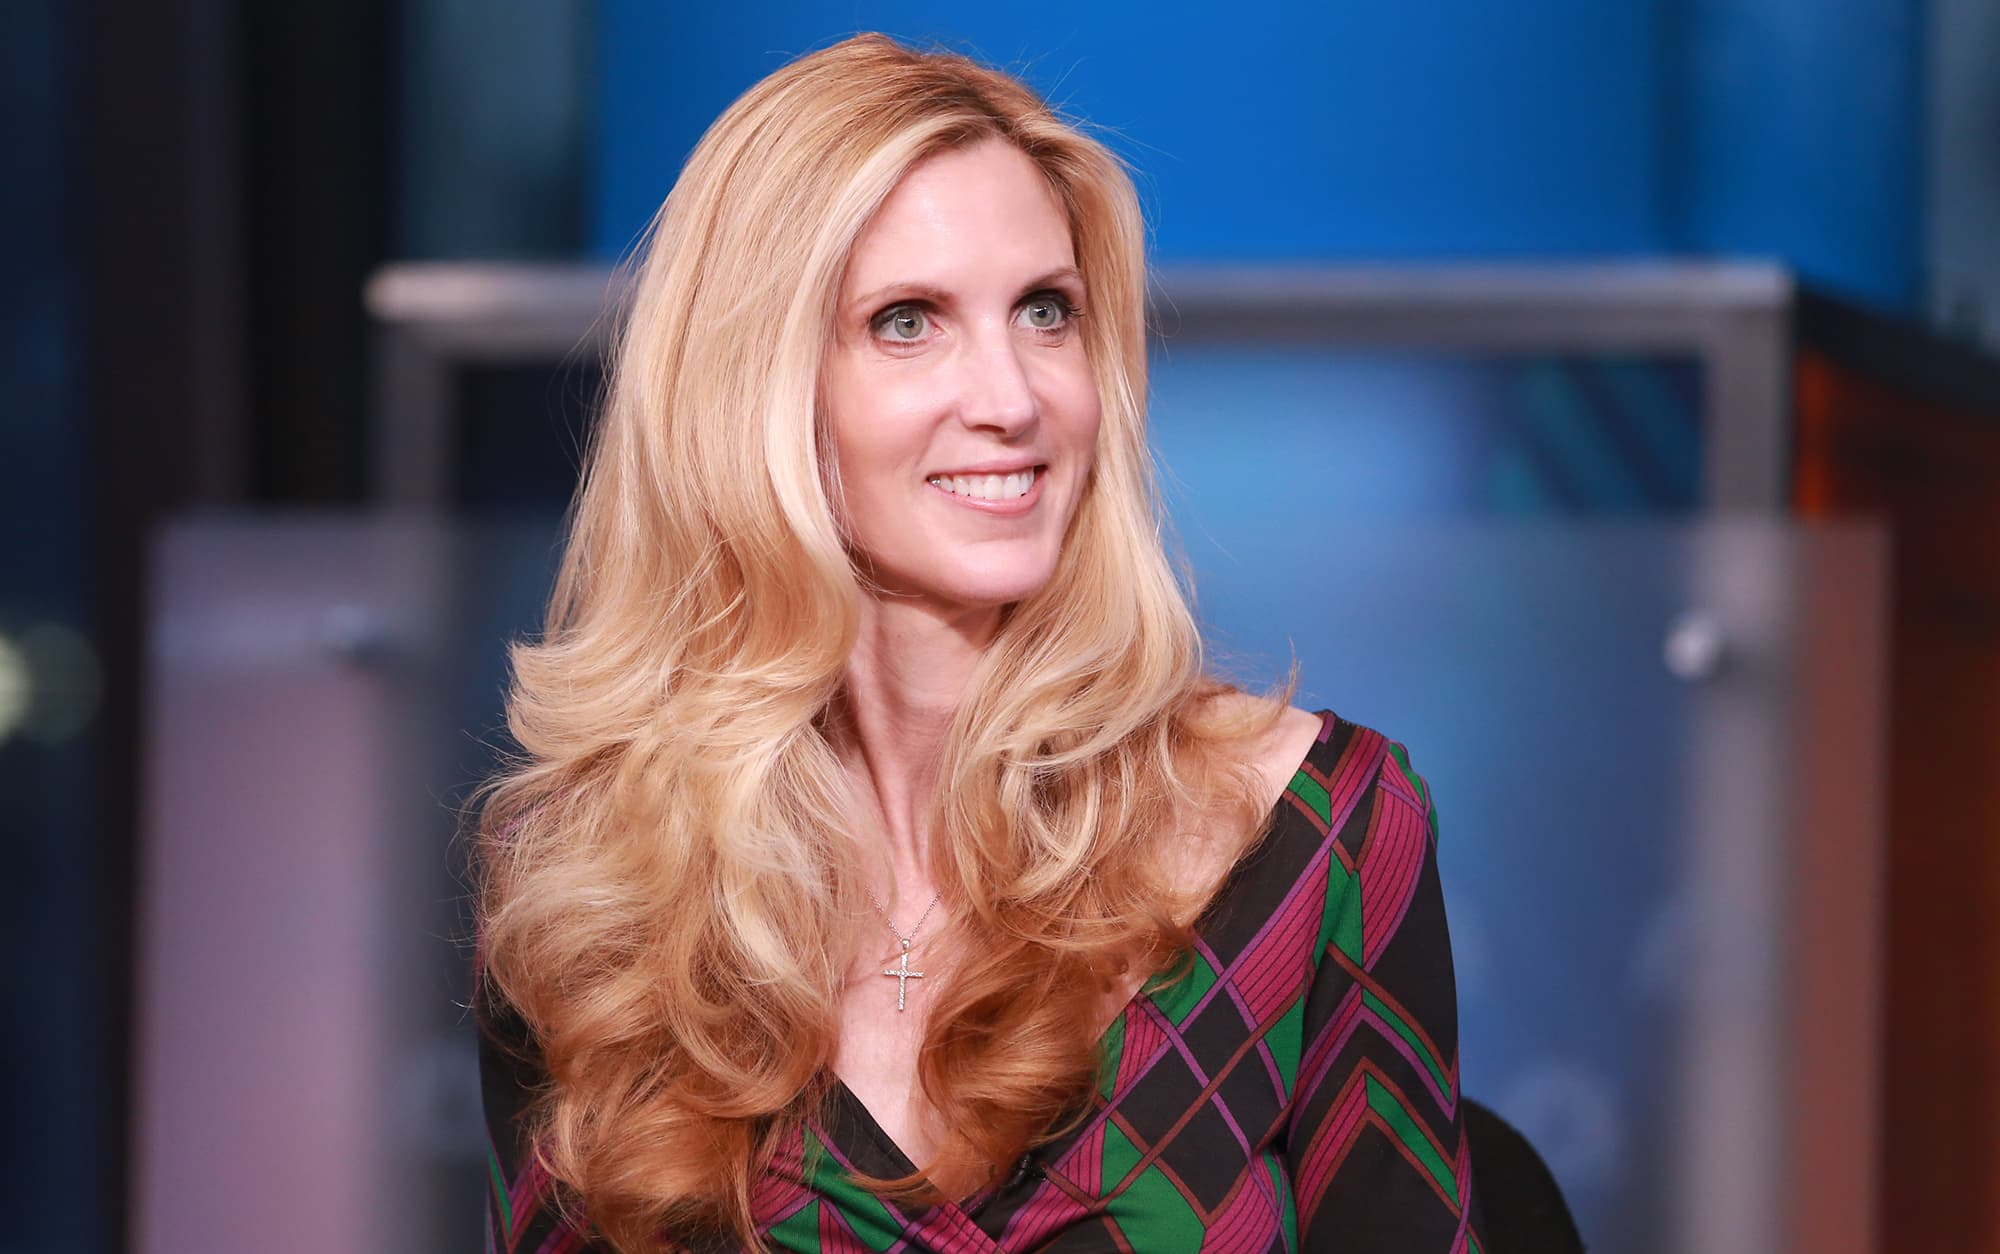 Delta fires back at Ann Coulter after she rages about seat